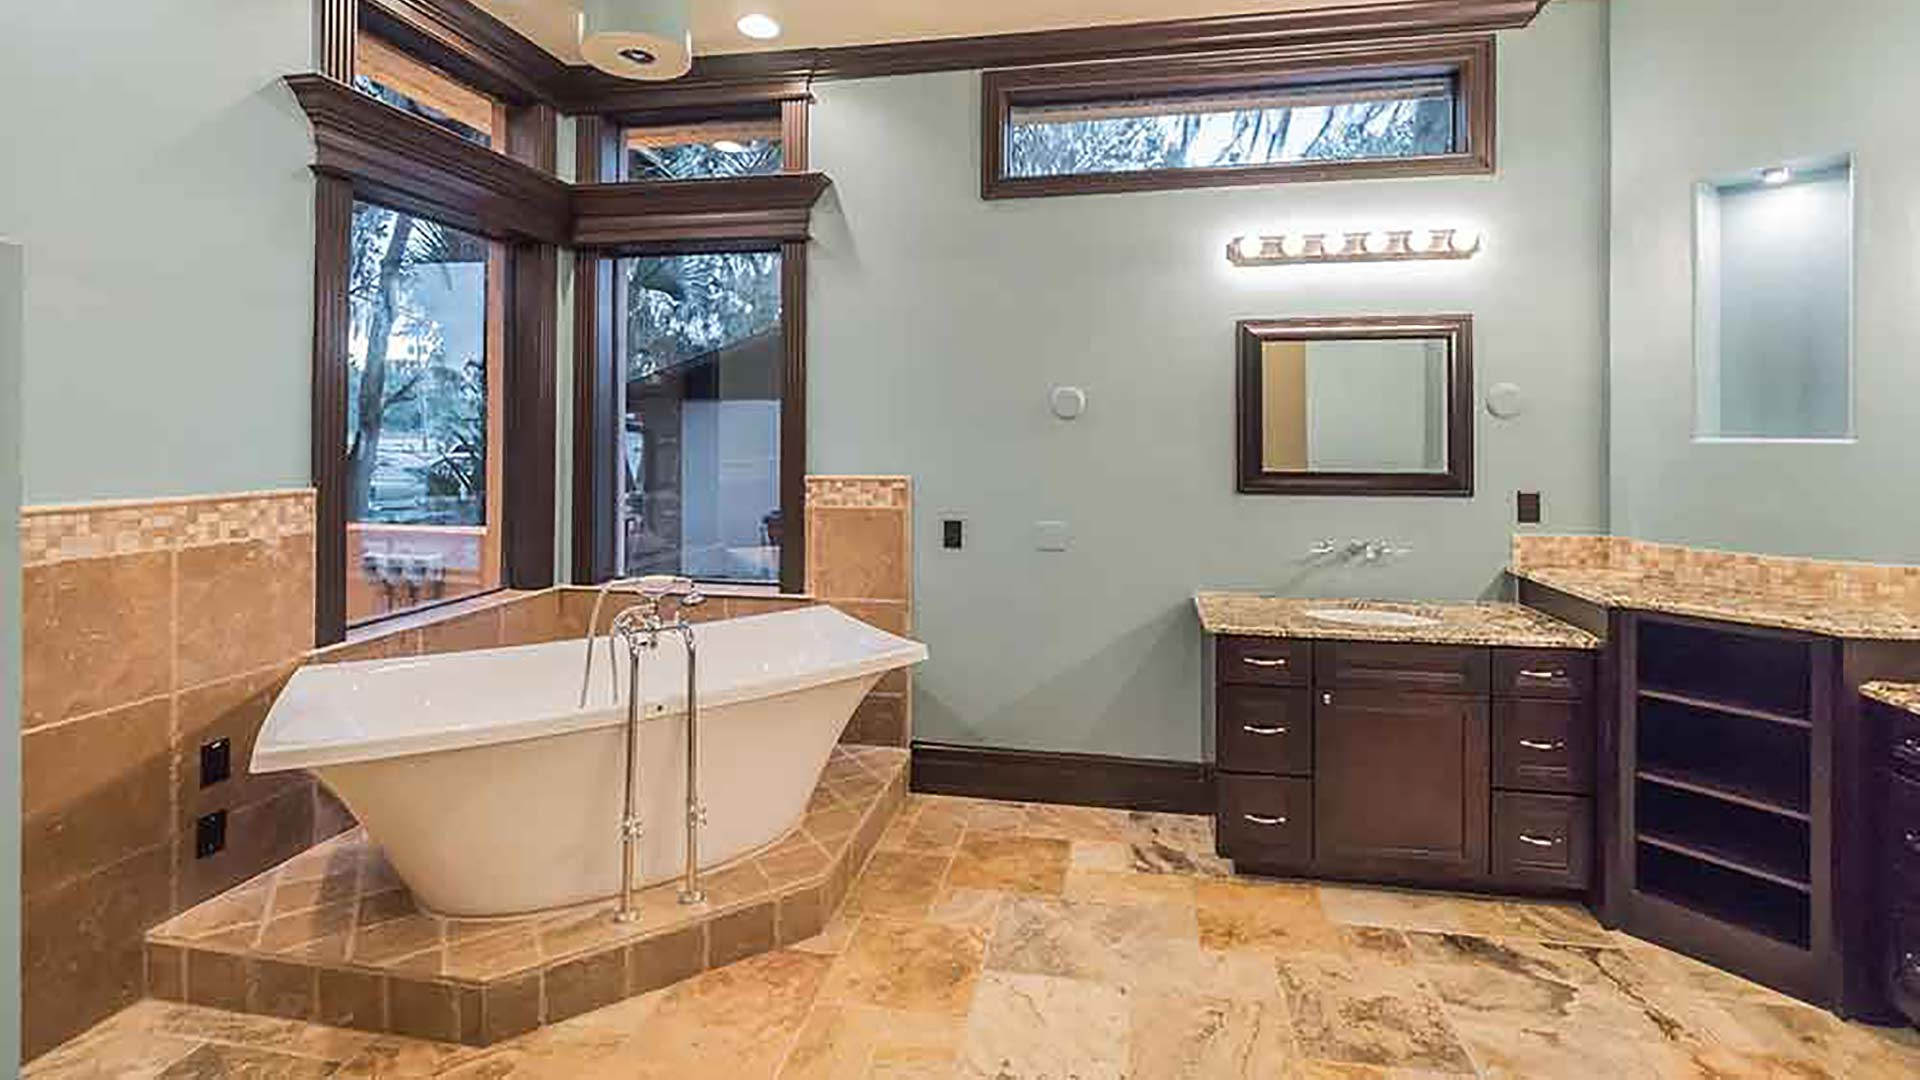 Thonotosassa, FL home with a True Builders remodeled bathroom.